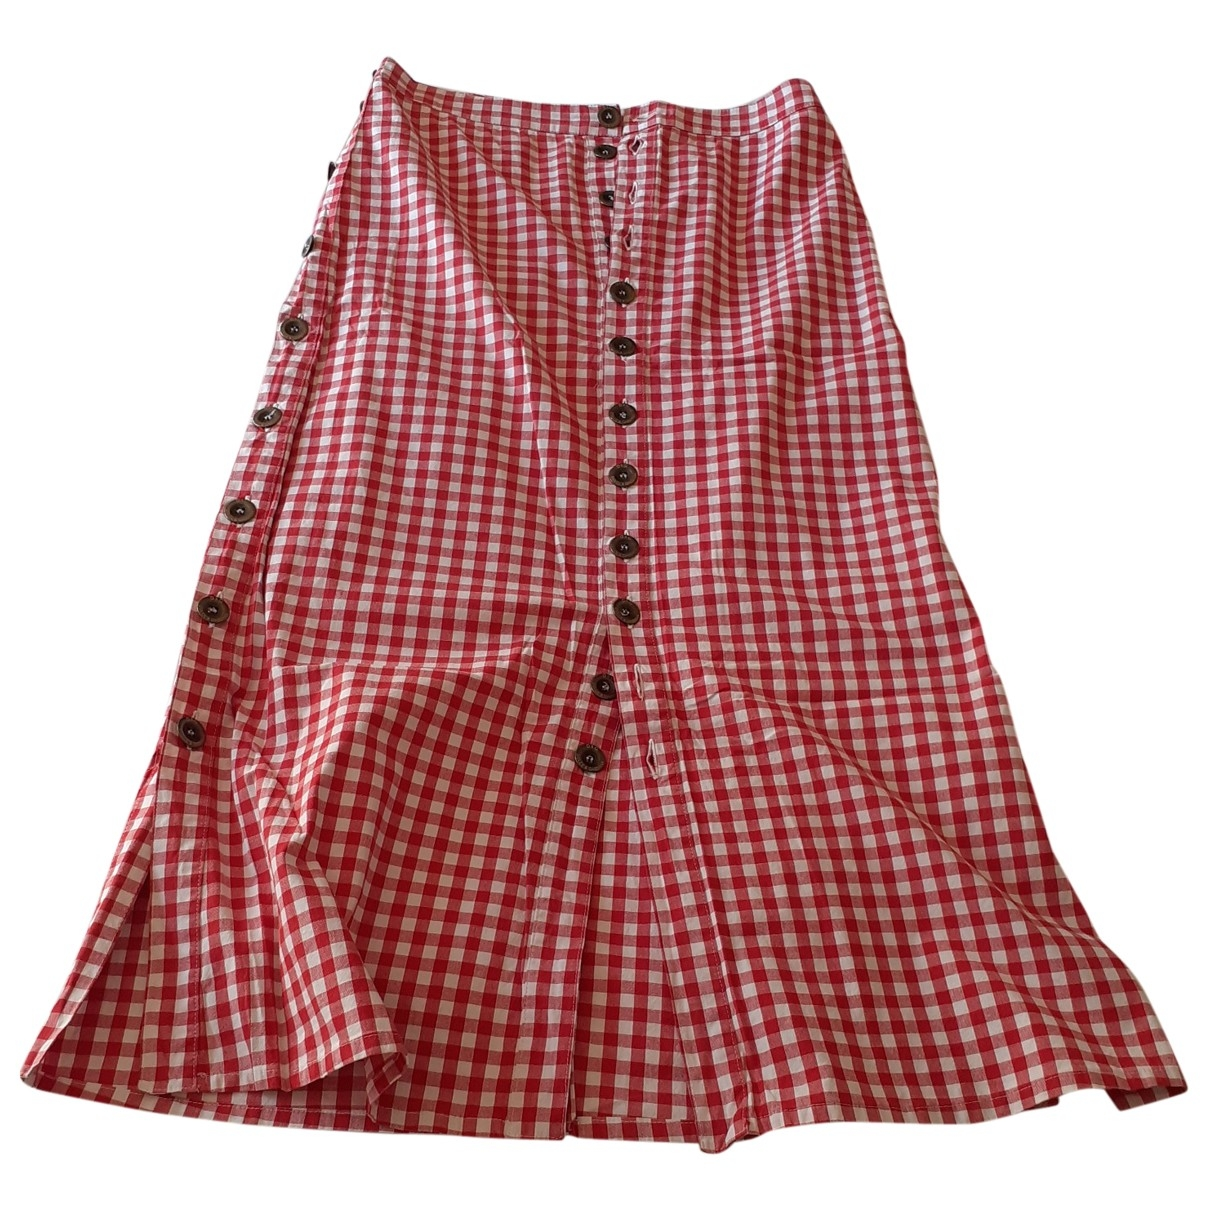 D&g \N Red Cotton skirt for Women 38 FR